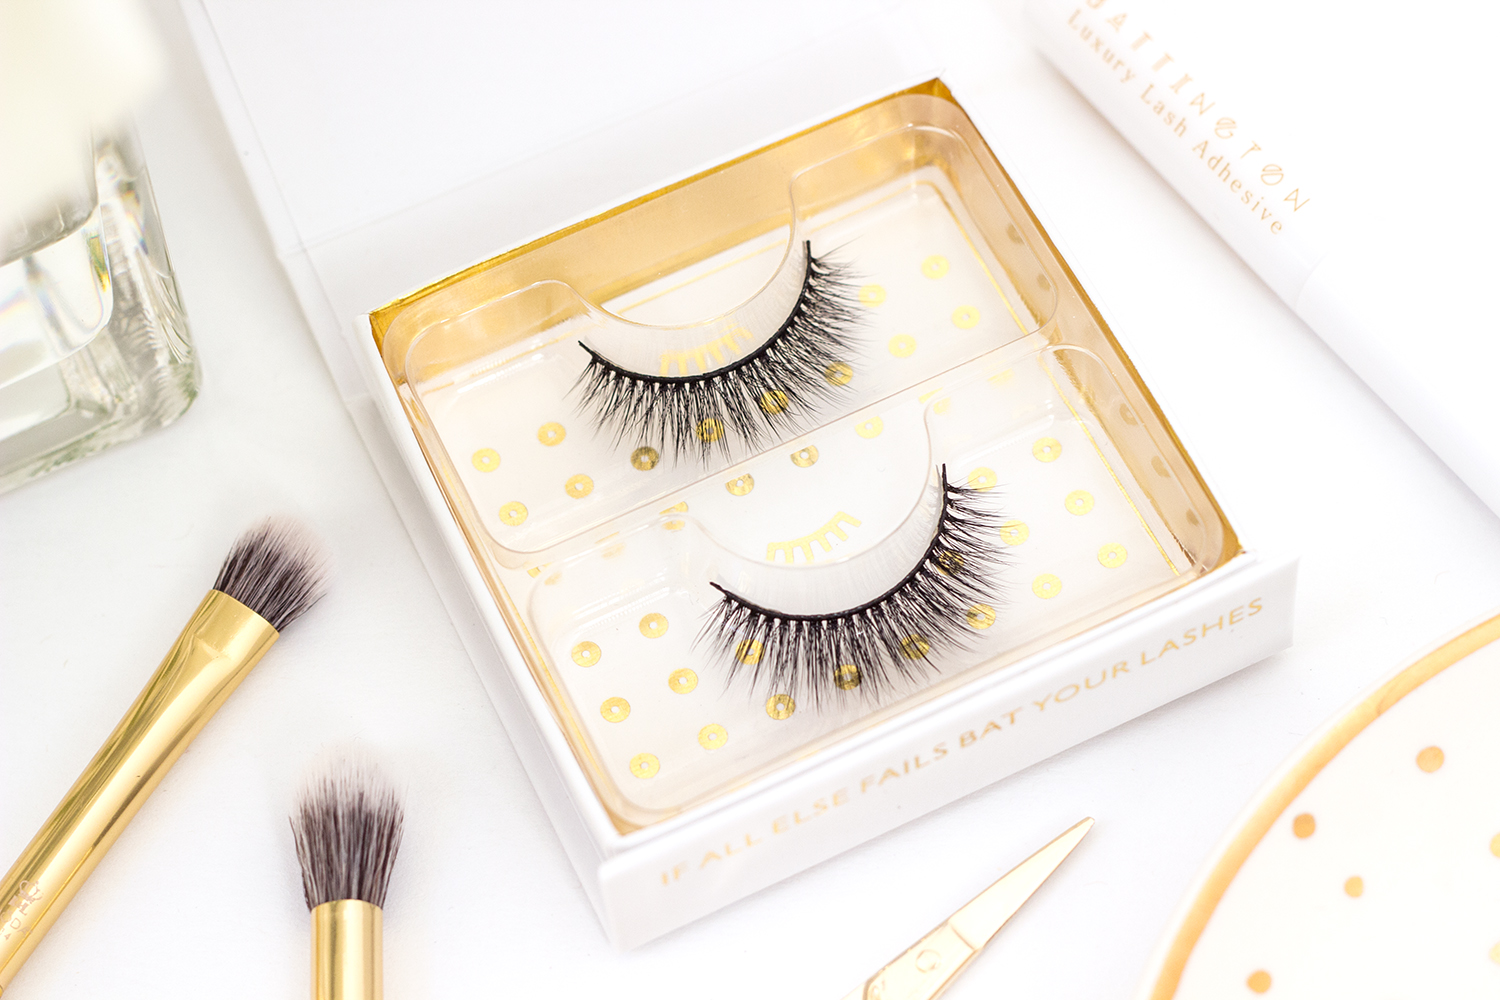 Battington Lash Cruelty Free Monroe 3D Silk False Lashes